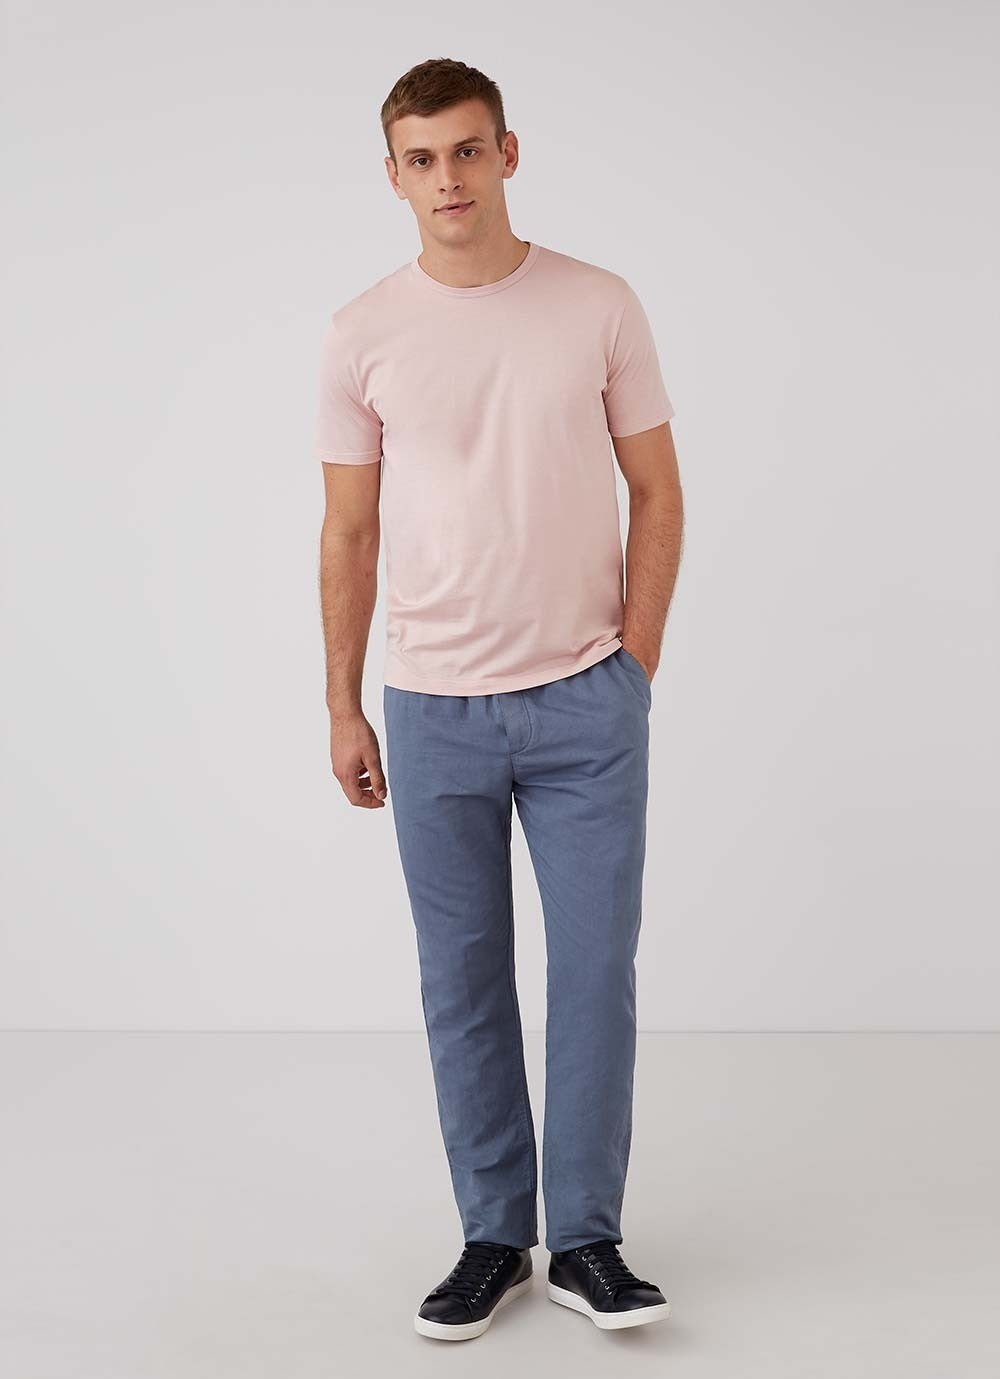 Dusty Pink Classic Cotton T-Shirt